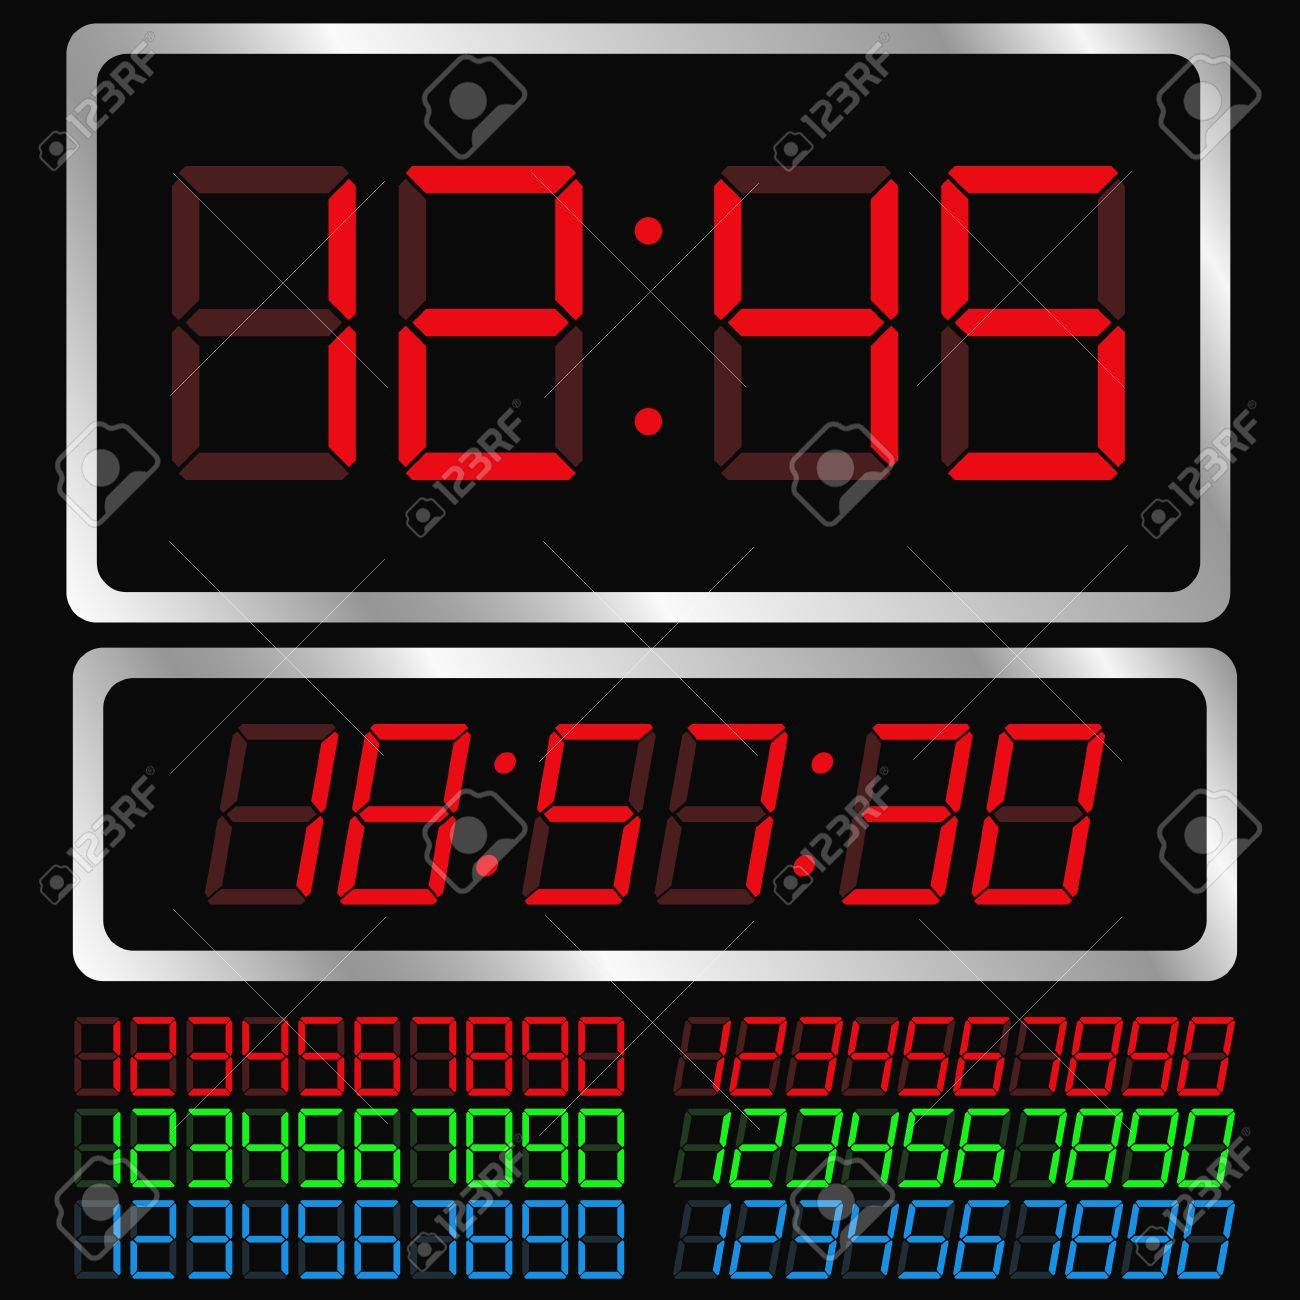 Vector Digital Clock Stock Vector - 10406227